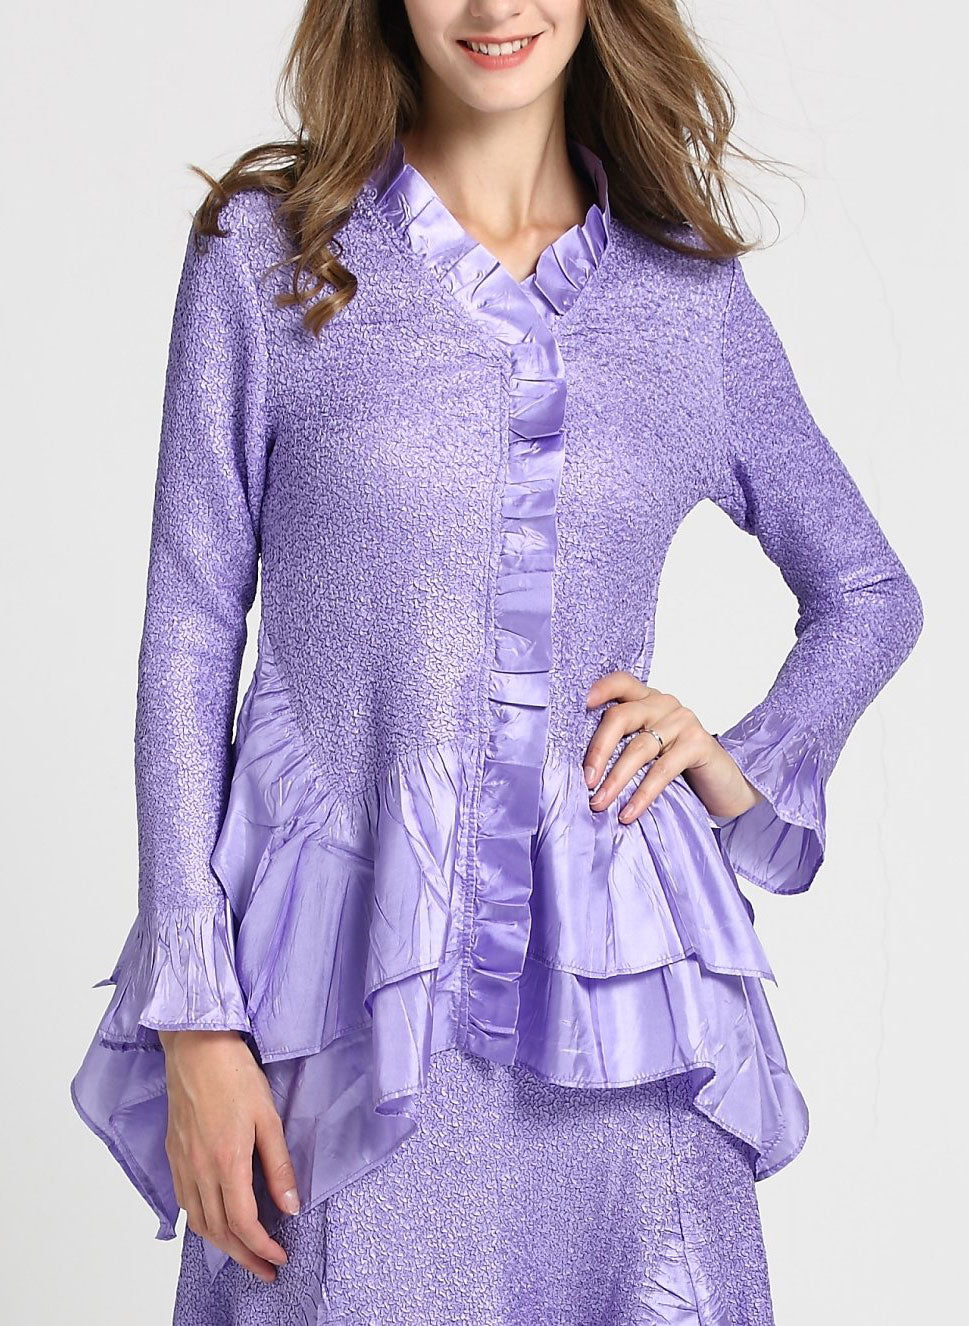 Jerry T Skirt Set SR7151-Lavender - Church Suits For Less